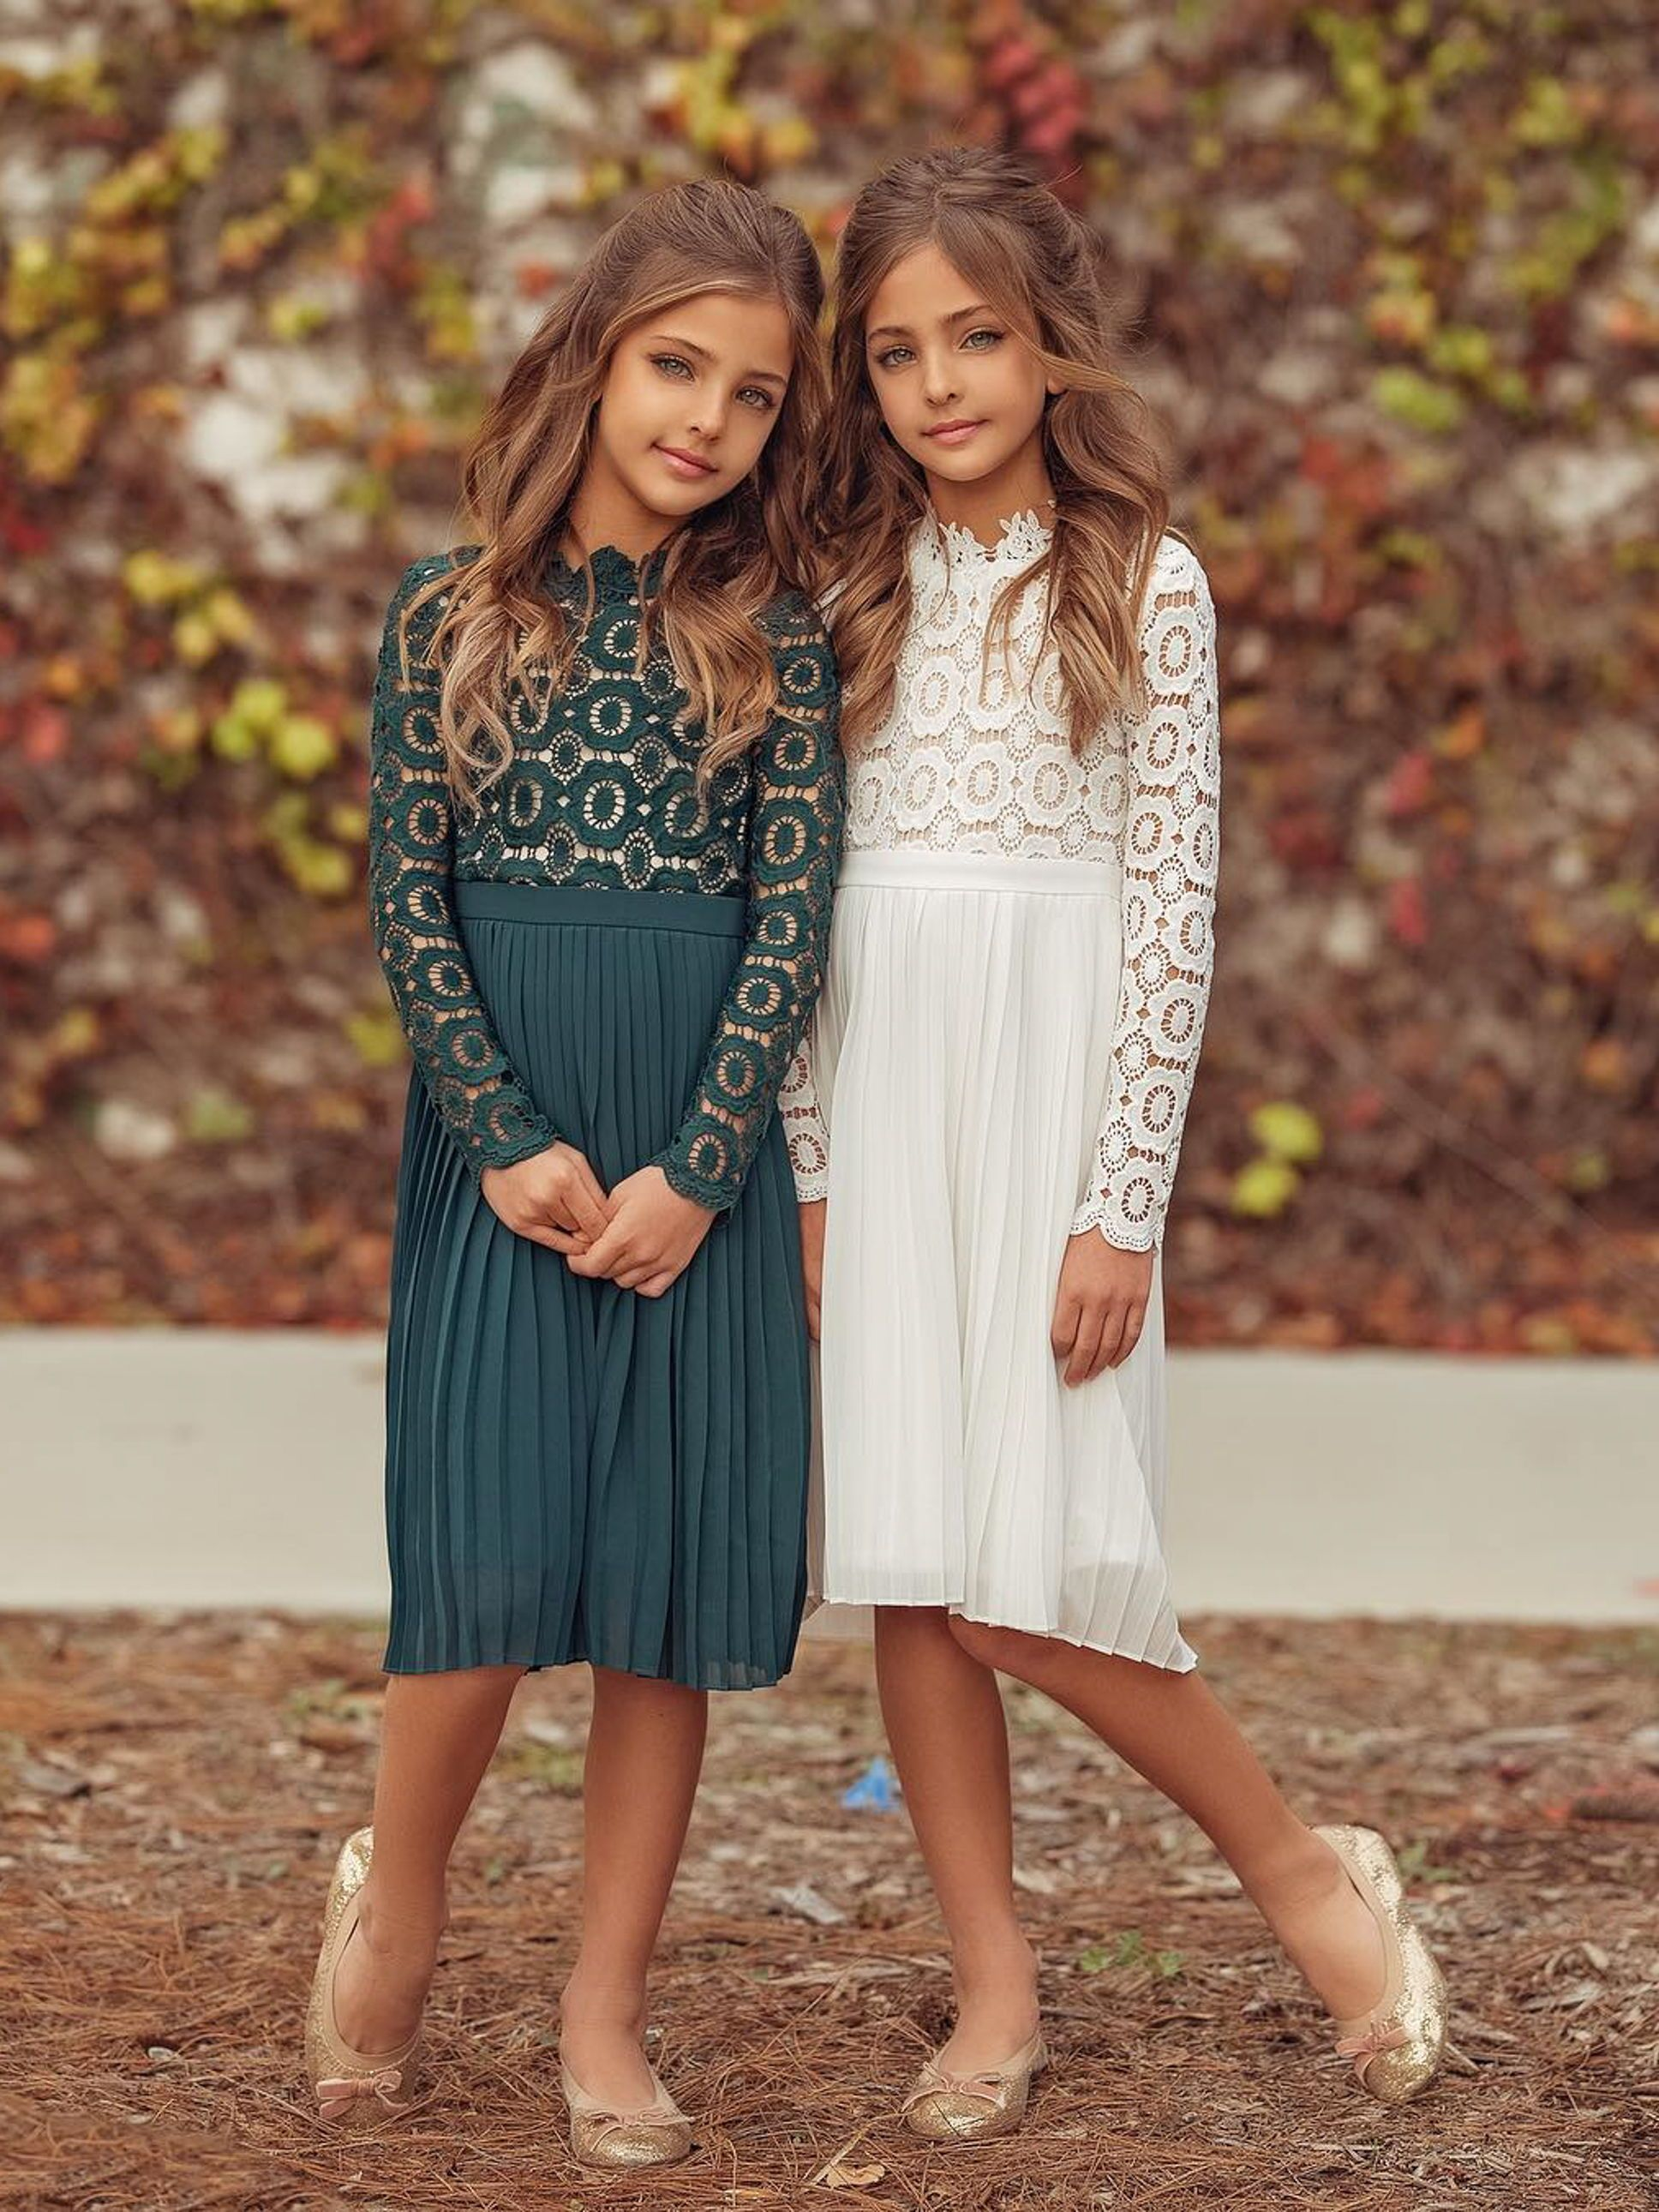 modest dresses for girls, pre-teens and teens. Long sleeve lace